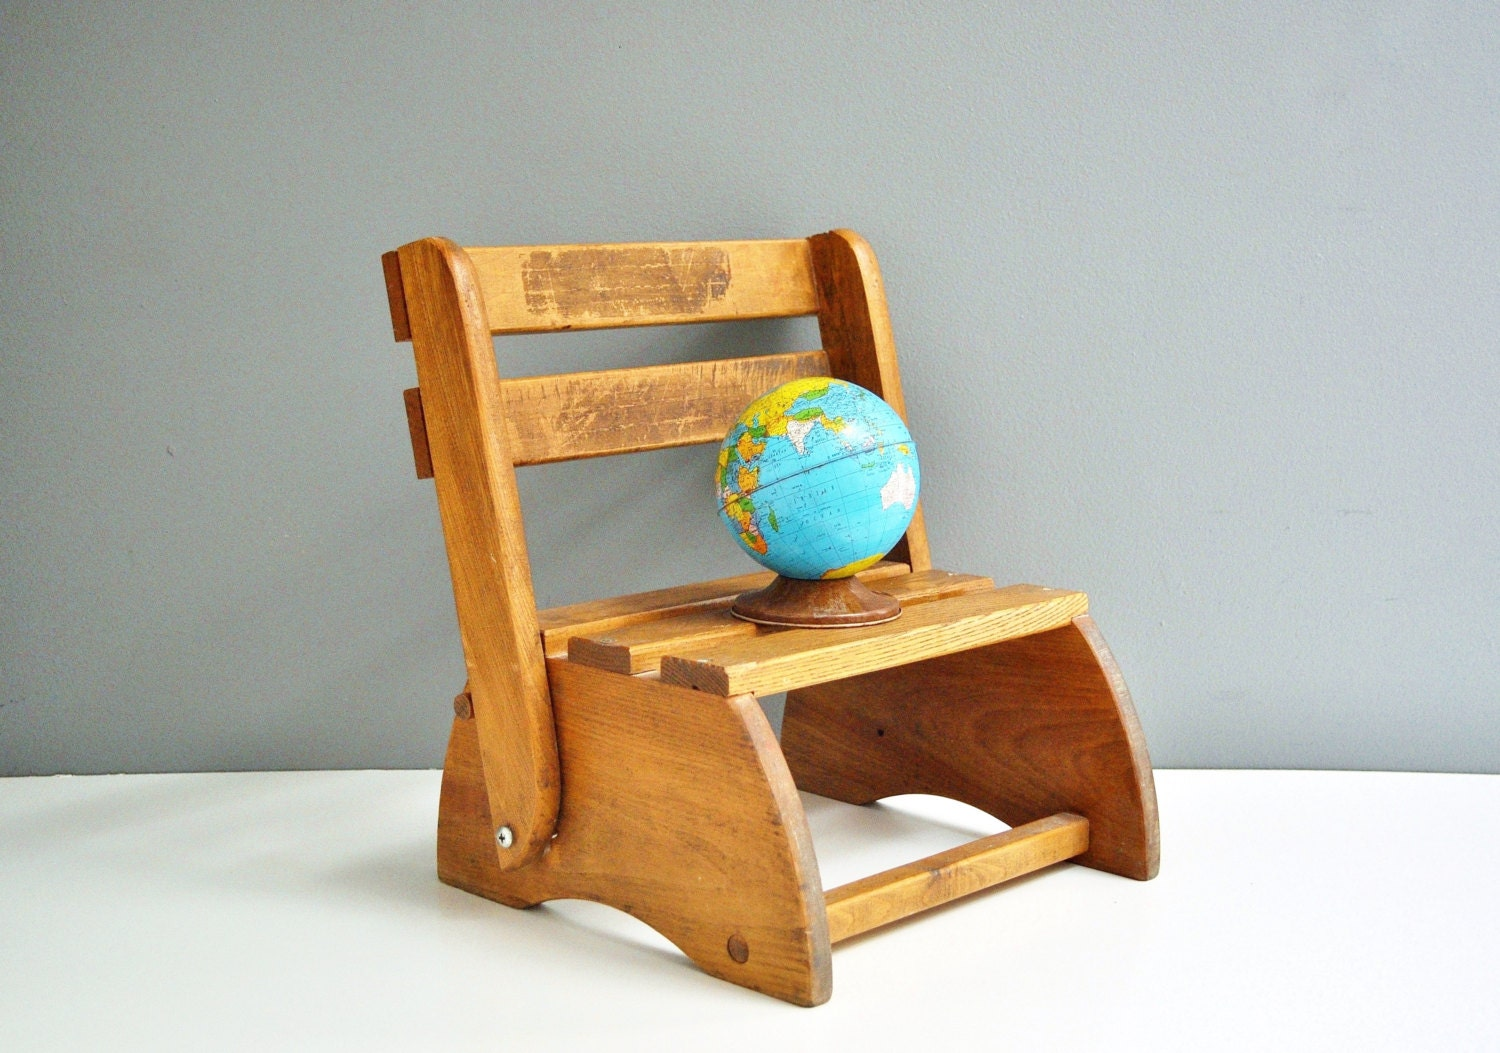 Marvelous photograph of Vintage Wooden Child's Step Stool by thewhitepepper on Etsy with #783A17 color and 1500x1053 pixels